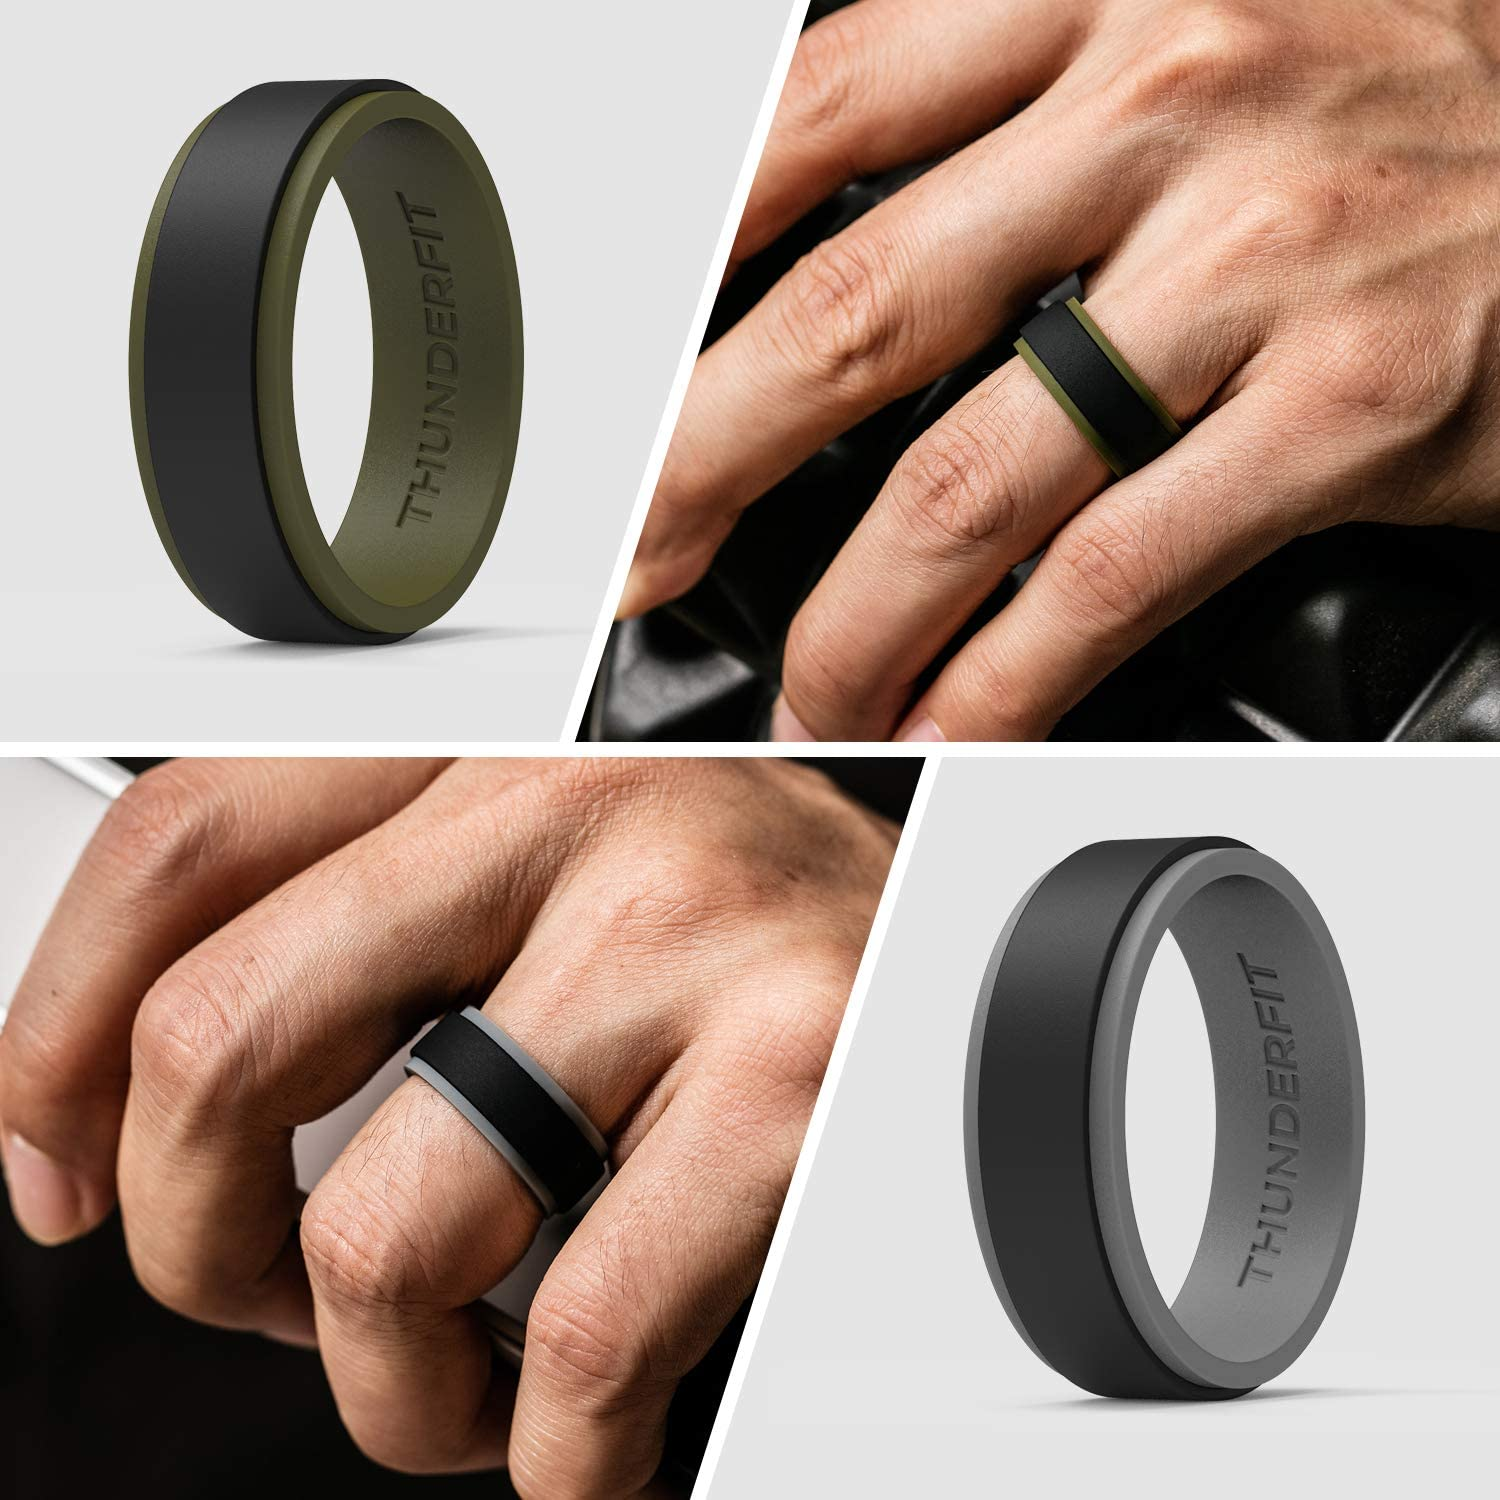 10mm Width 7 Rings // 4 Rings // 1 Ring Step Edge Sleek Design Rubber Engagement Bands ThunderFit Silicone Wedding Rings for Men 2 Layers 2.3mm Thickness